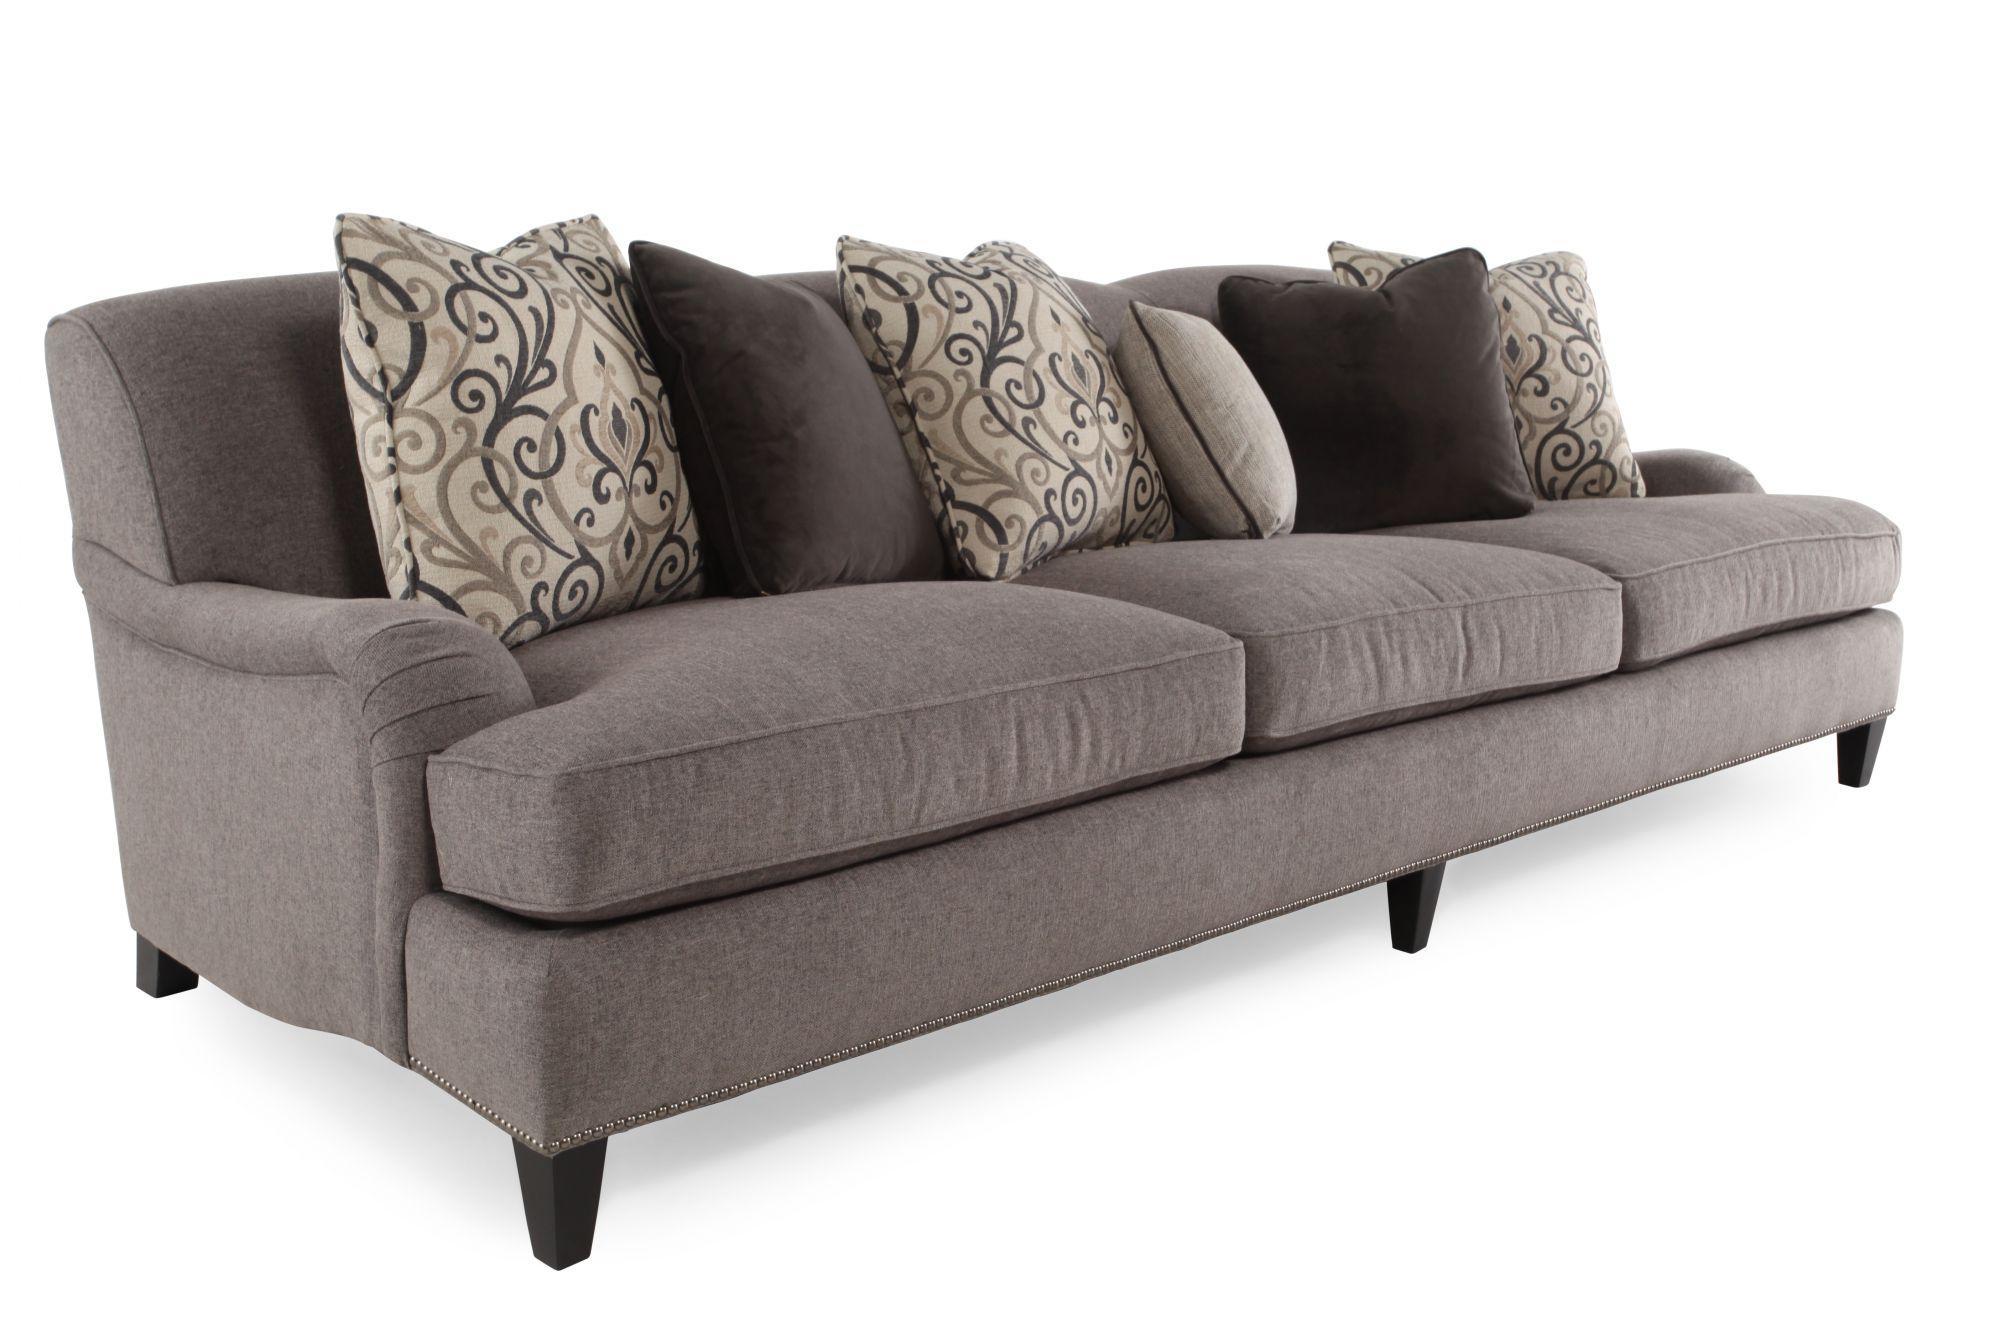 20 best ideas bernhardt sofas sofa ideas for Bernhardt living room furniture